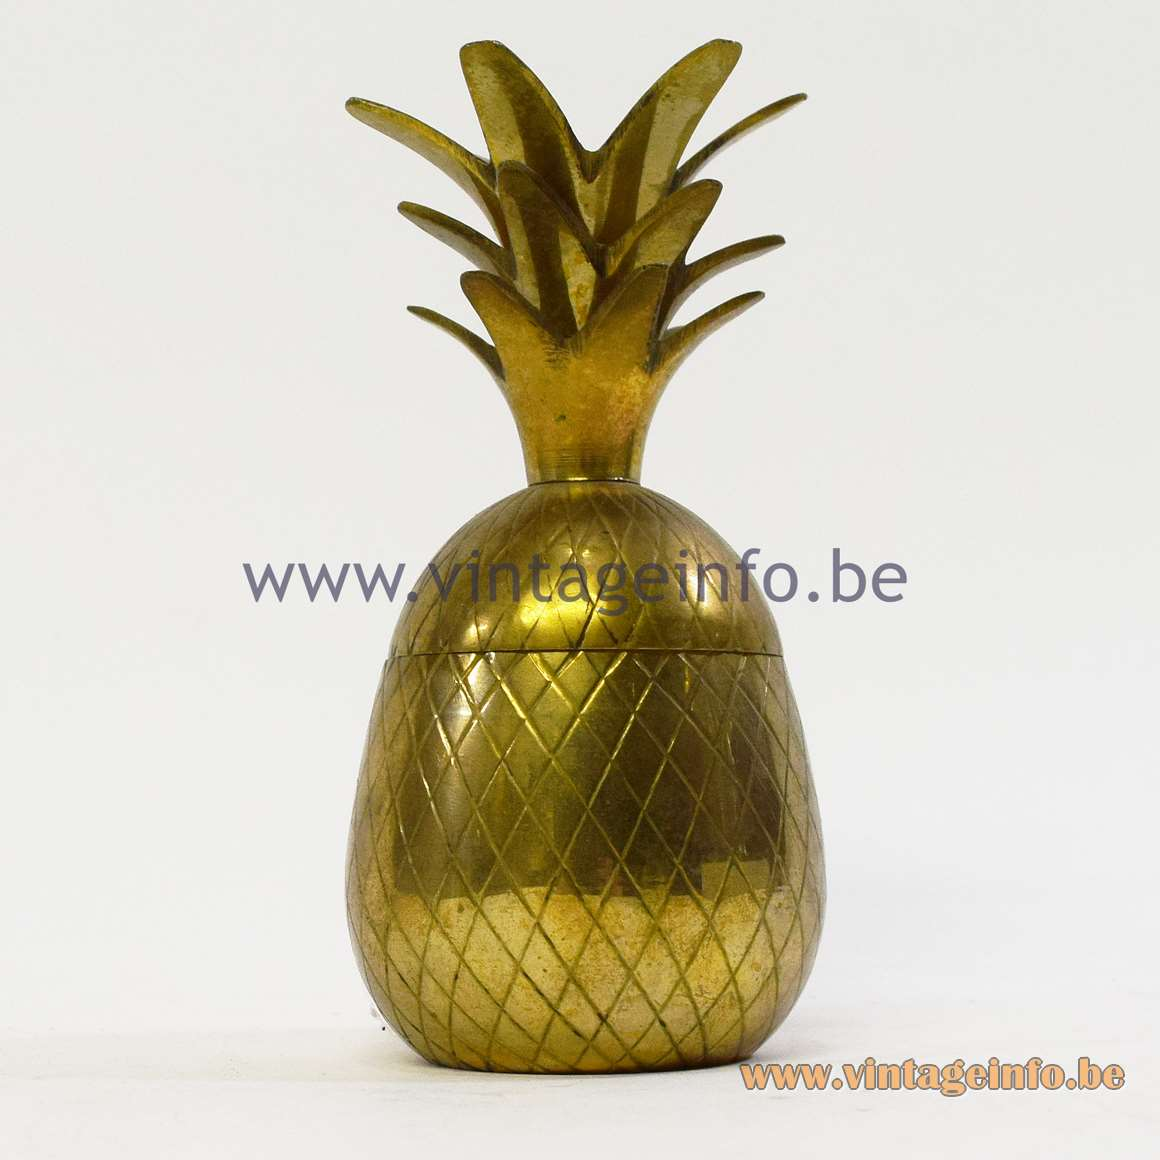 Pineaple in brass from India